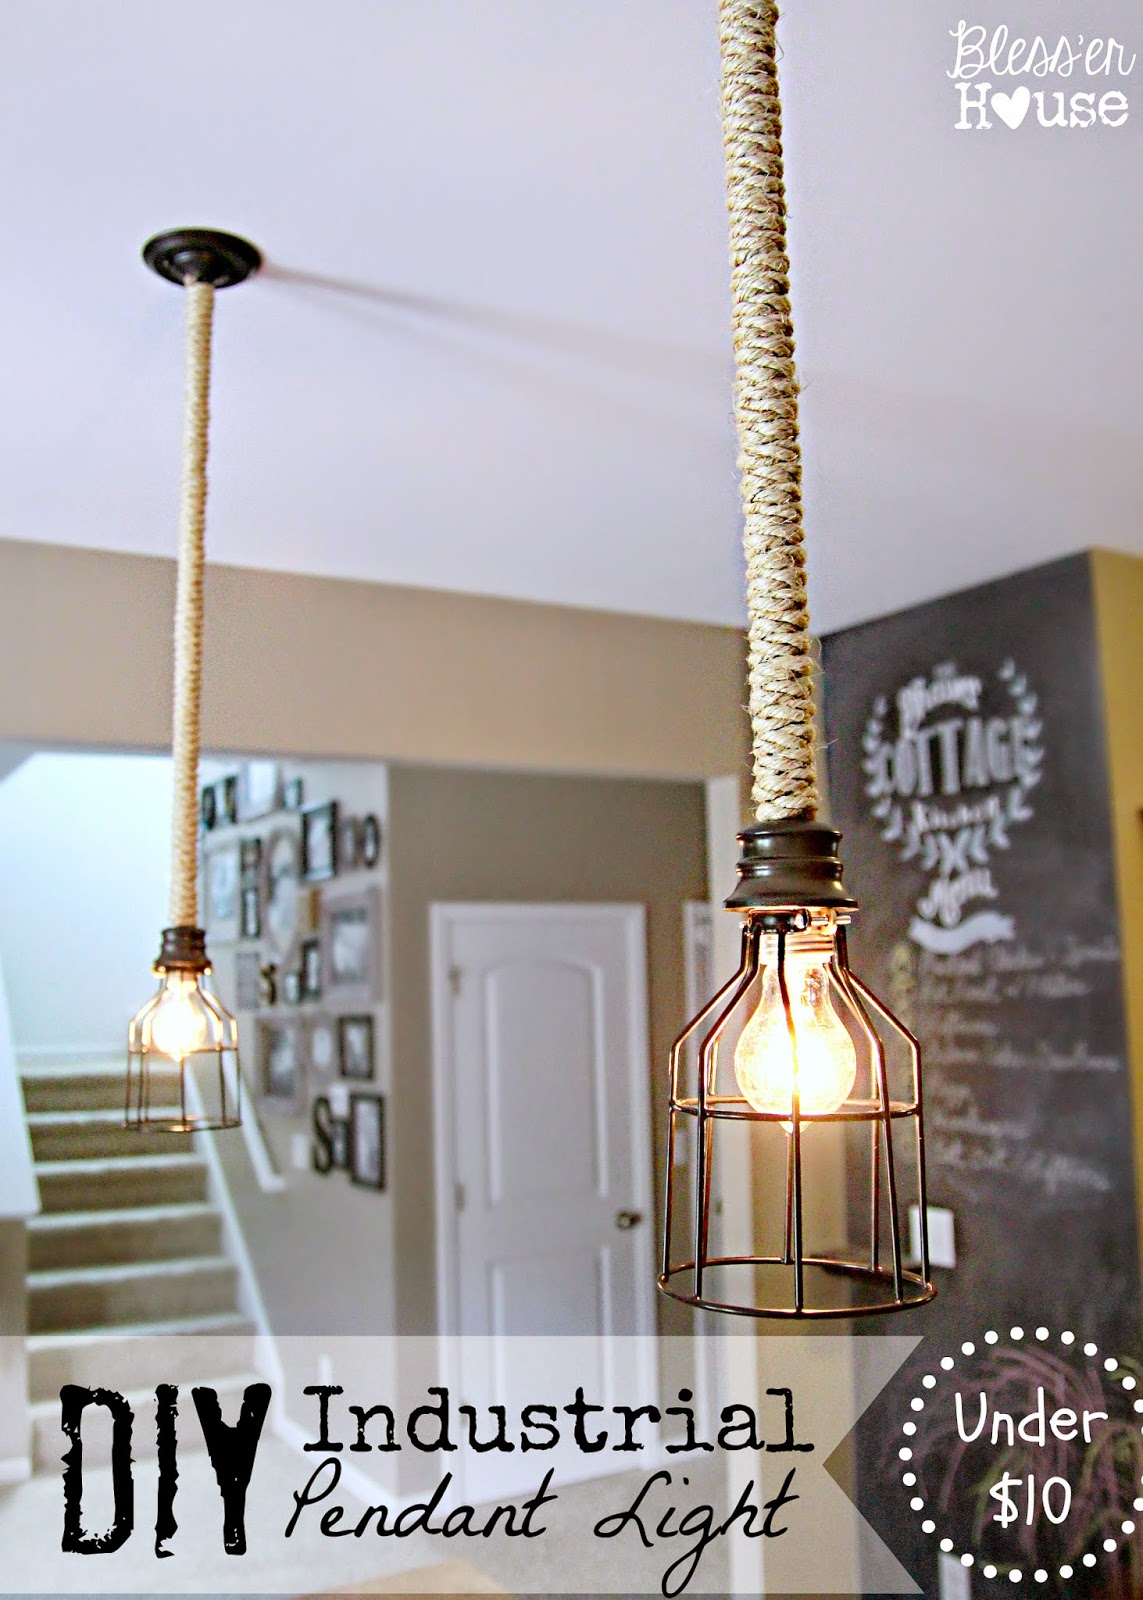 Diy industrial pendant light for under 10 blesser house diy industrial pendant light blesser house aloadofball